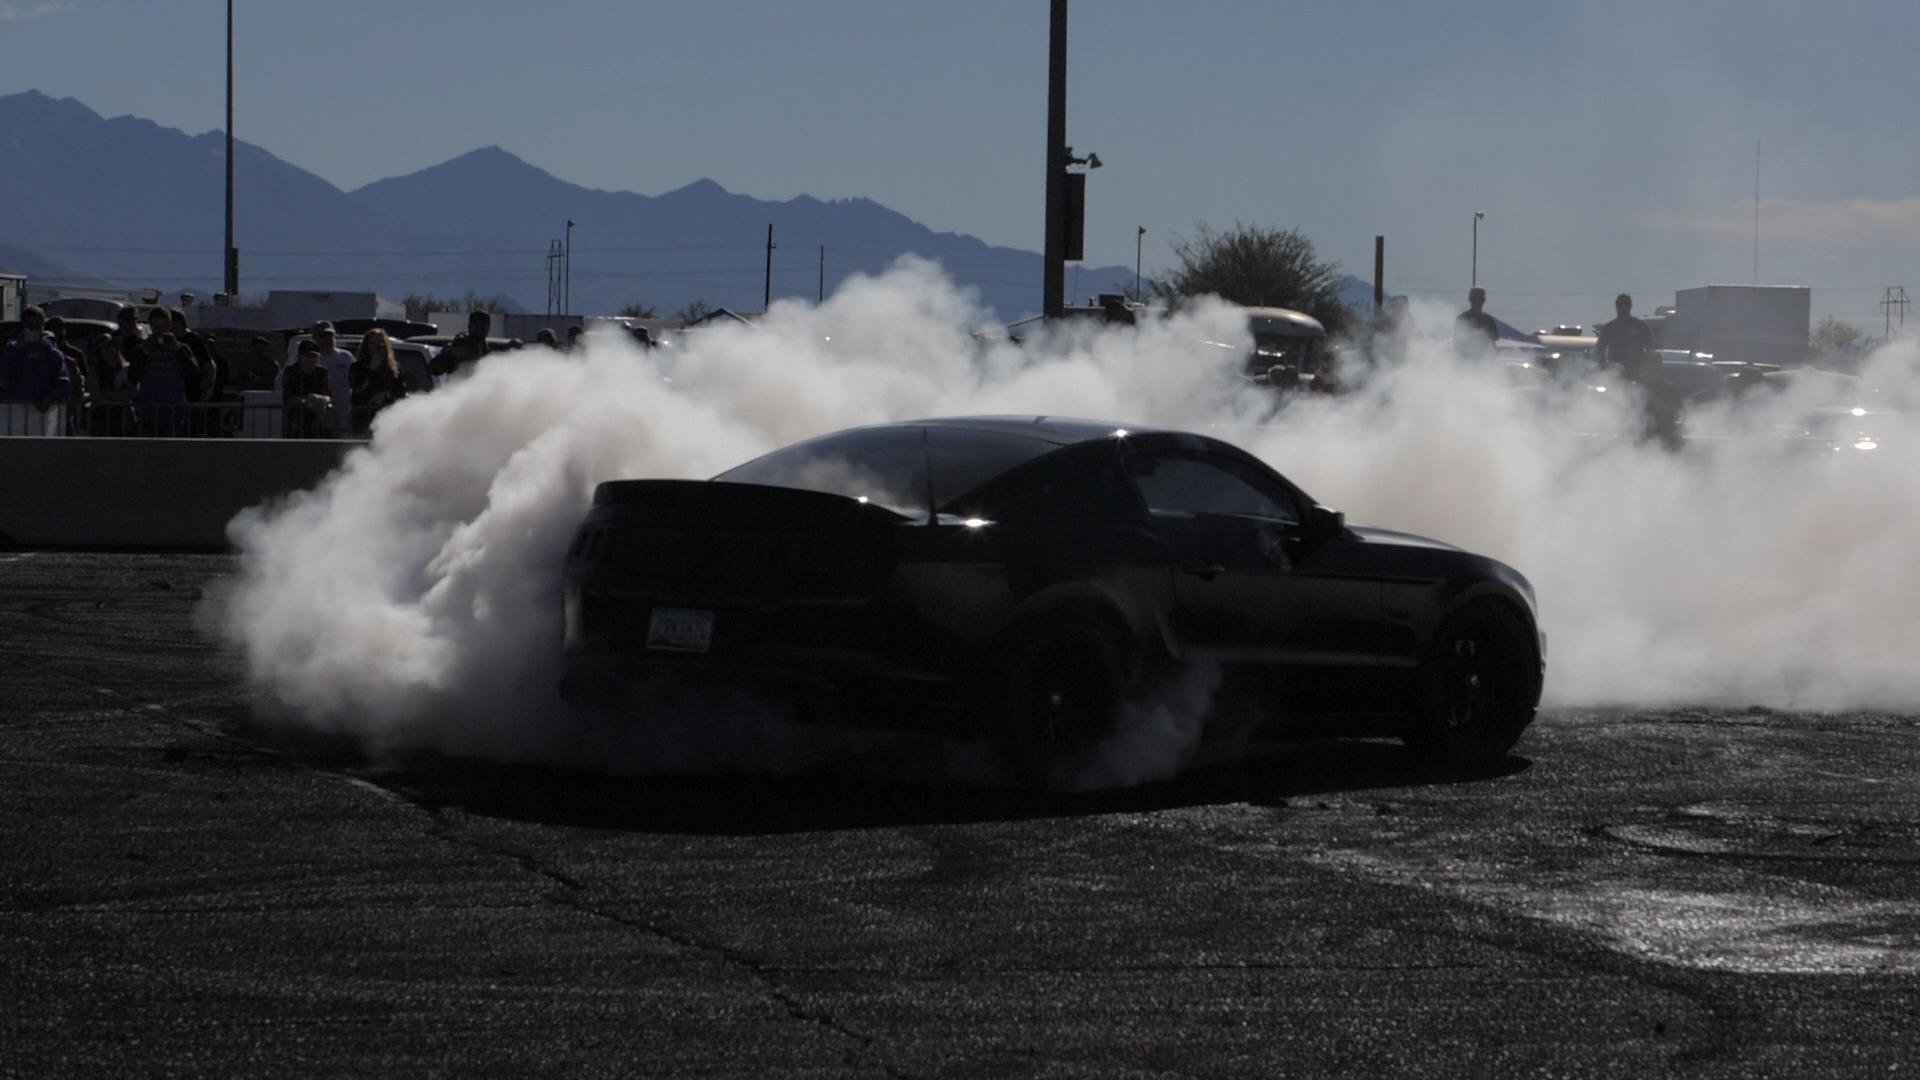 Cars Doing Burnouts in Slow Motion